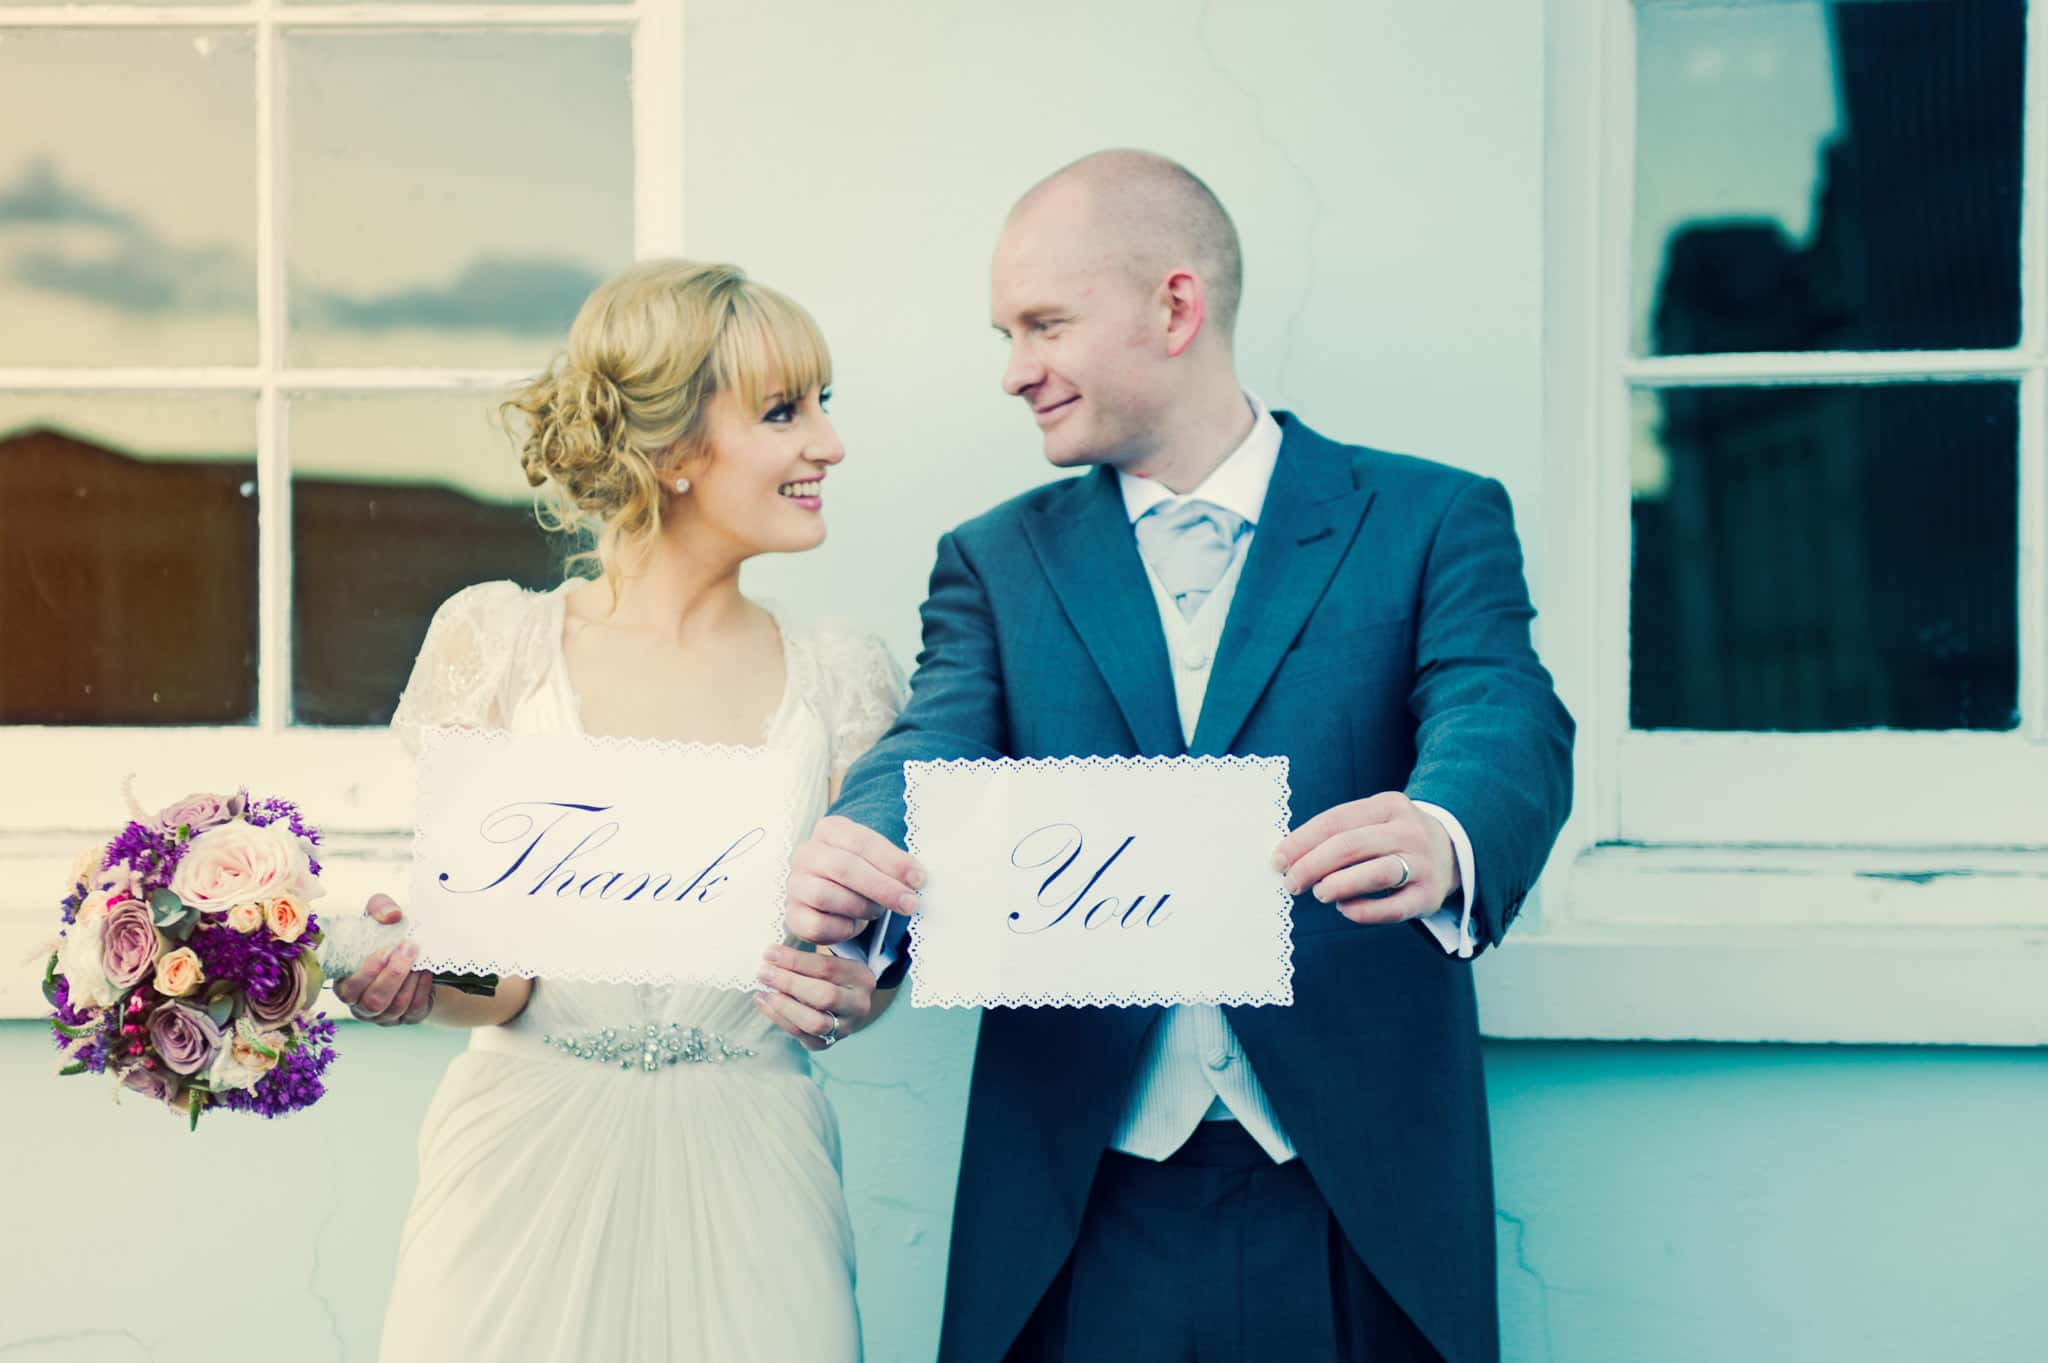 wedding-photography-morgans-hotel-swansea-south-wales (27)